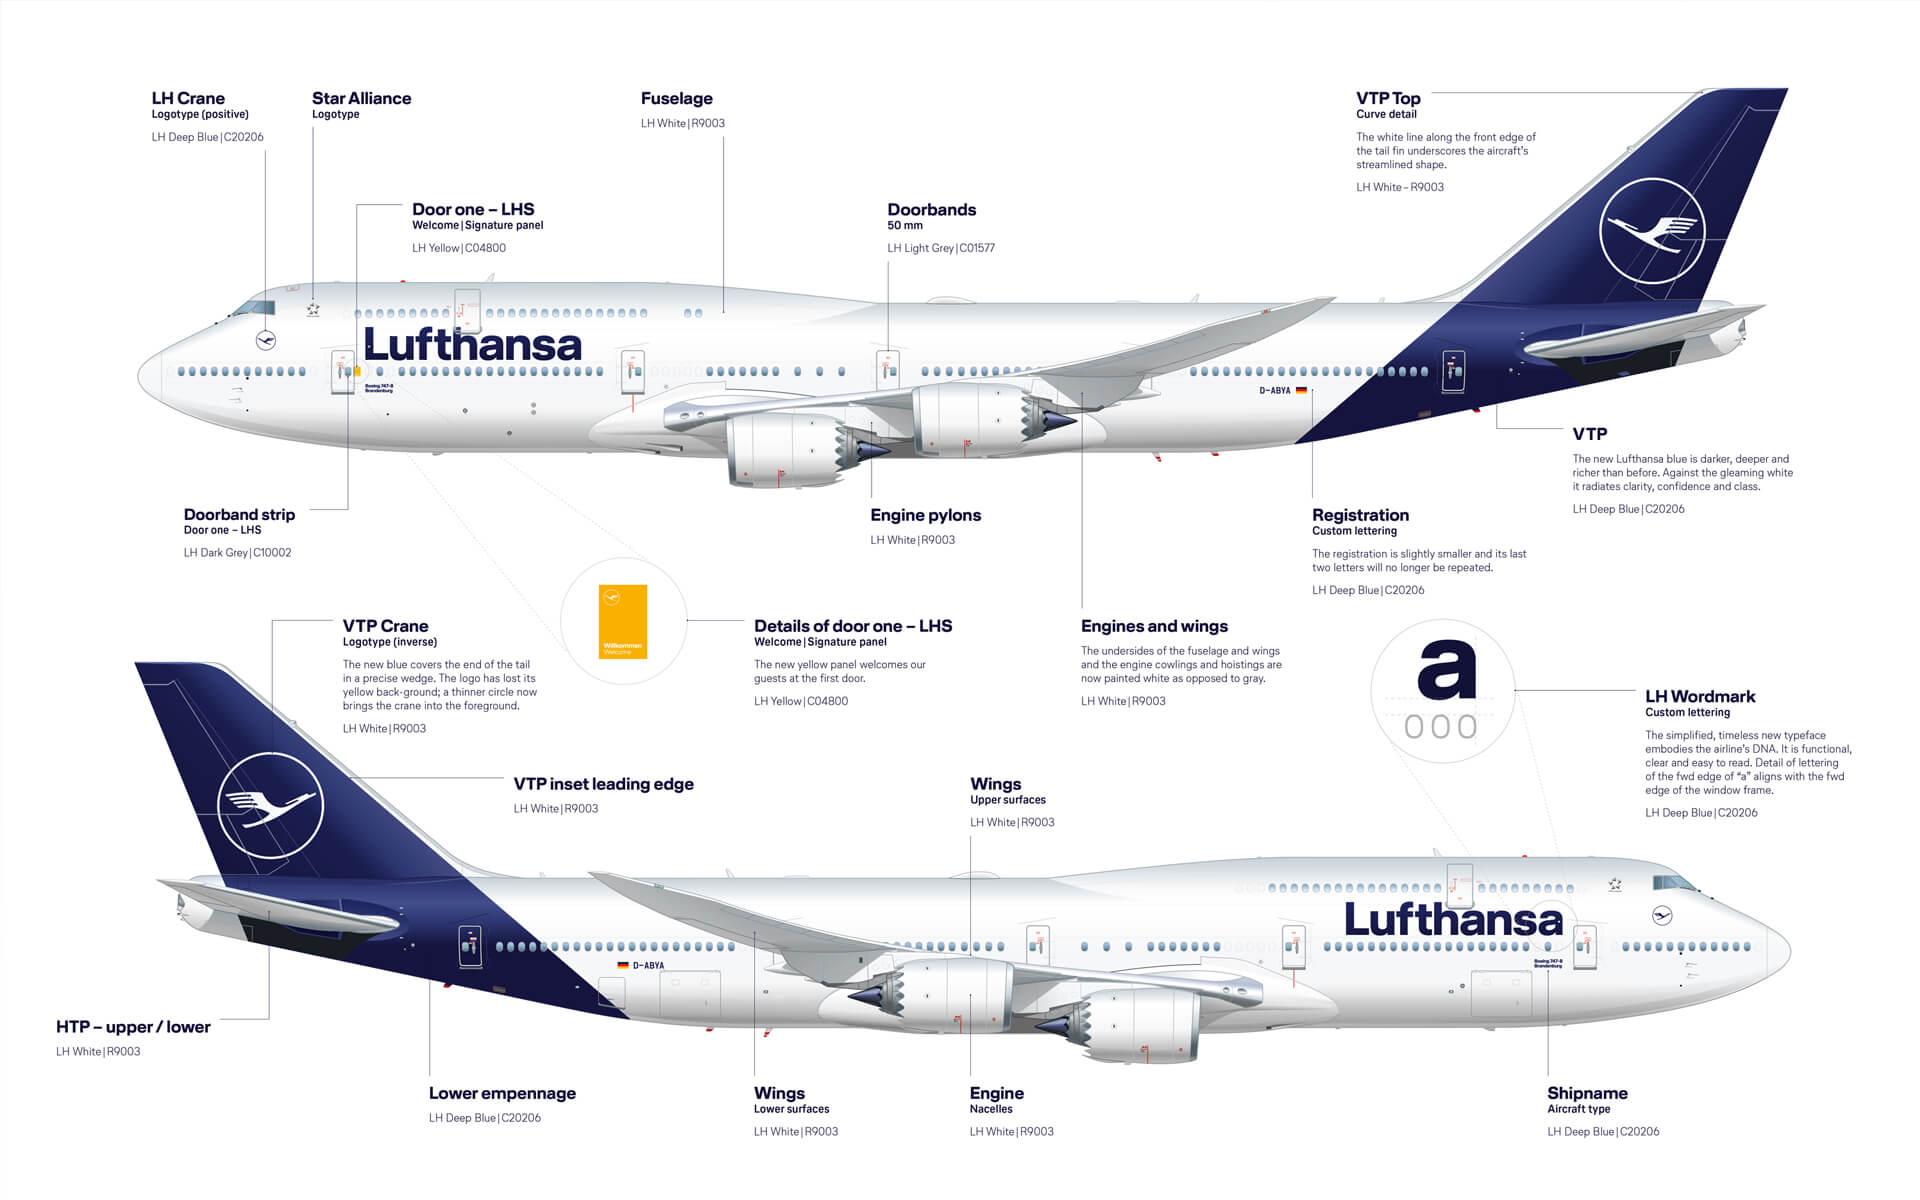 Lufthansa Corporate Design 2018, Redesign, Airplane Design